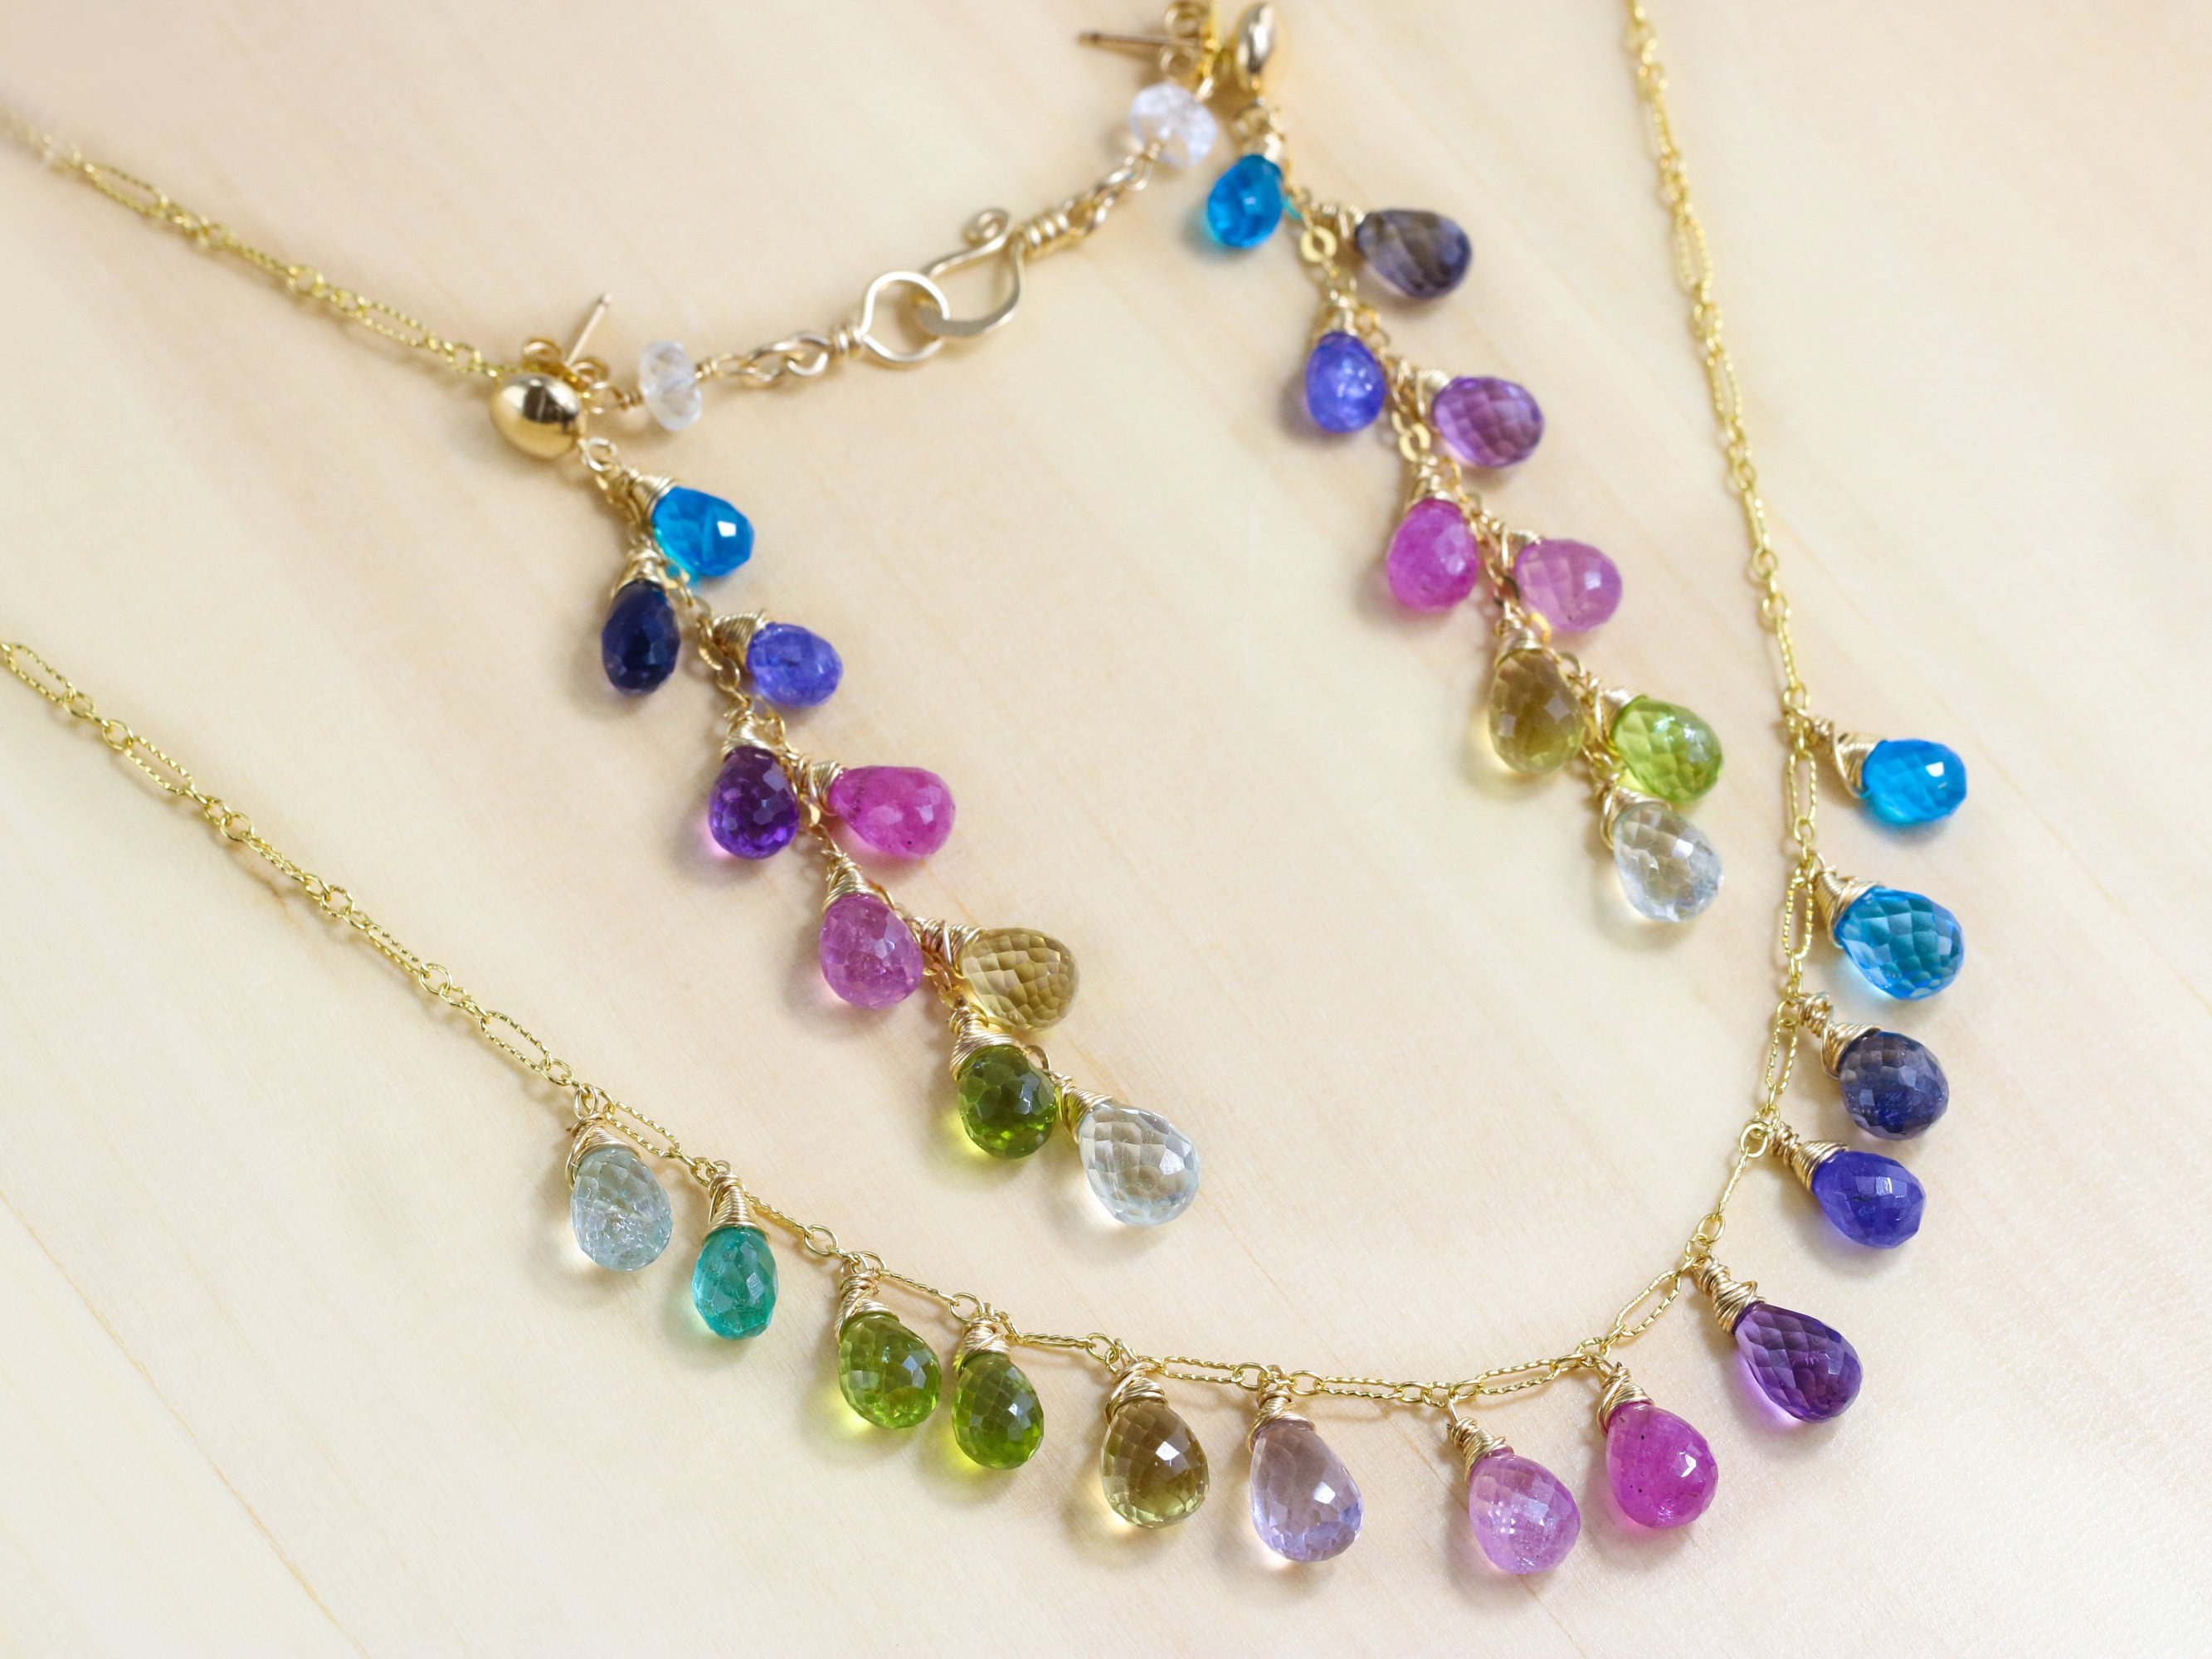 baiushki products rainbow necklace